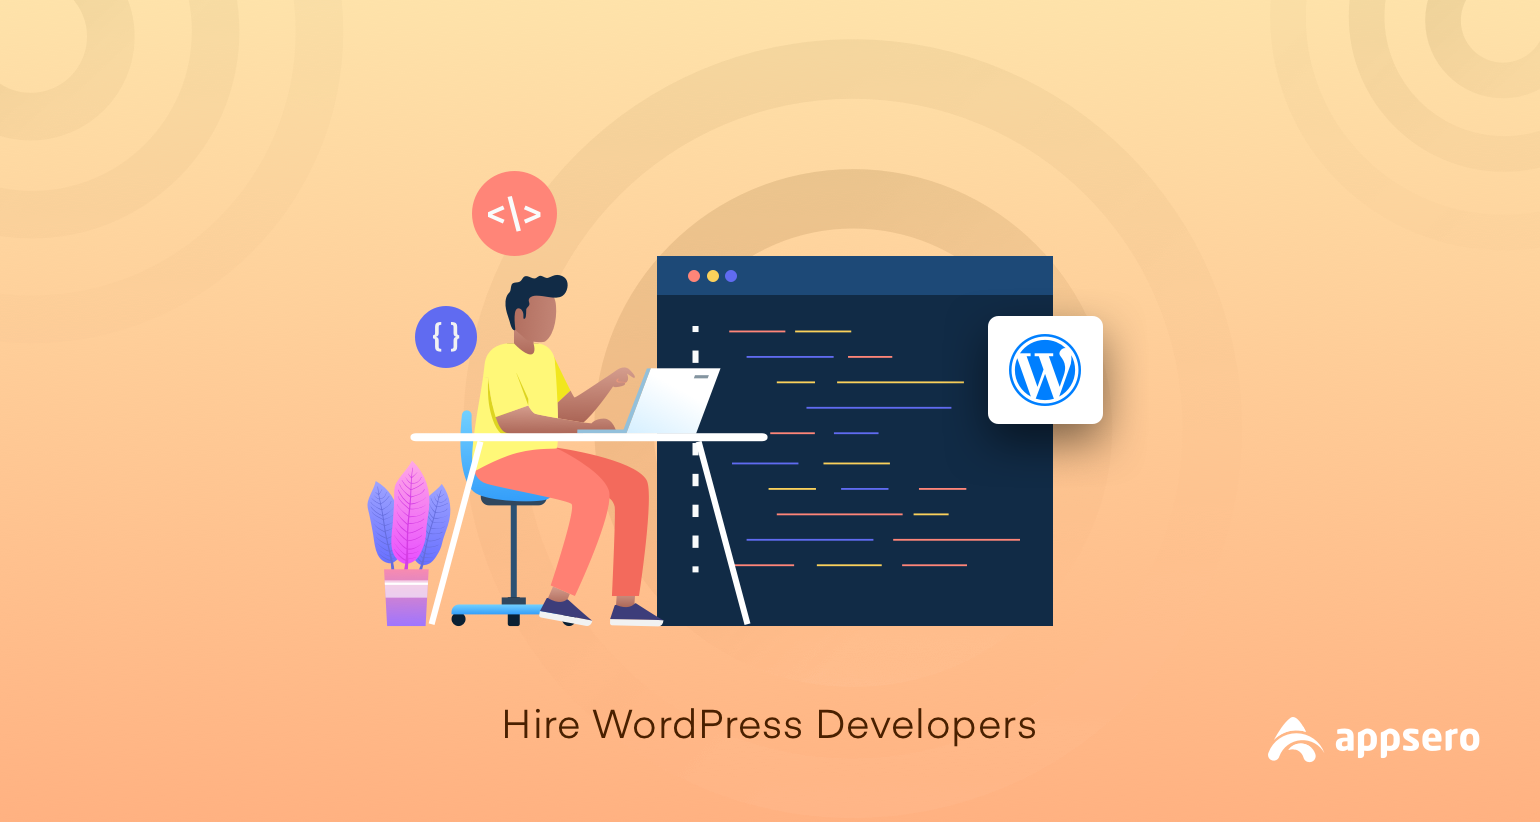 How To Hire WordPress Developers (5 Easy Steps)